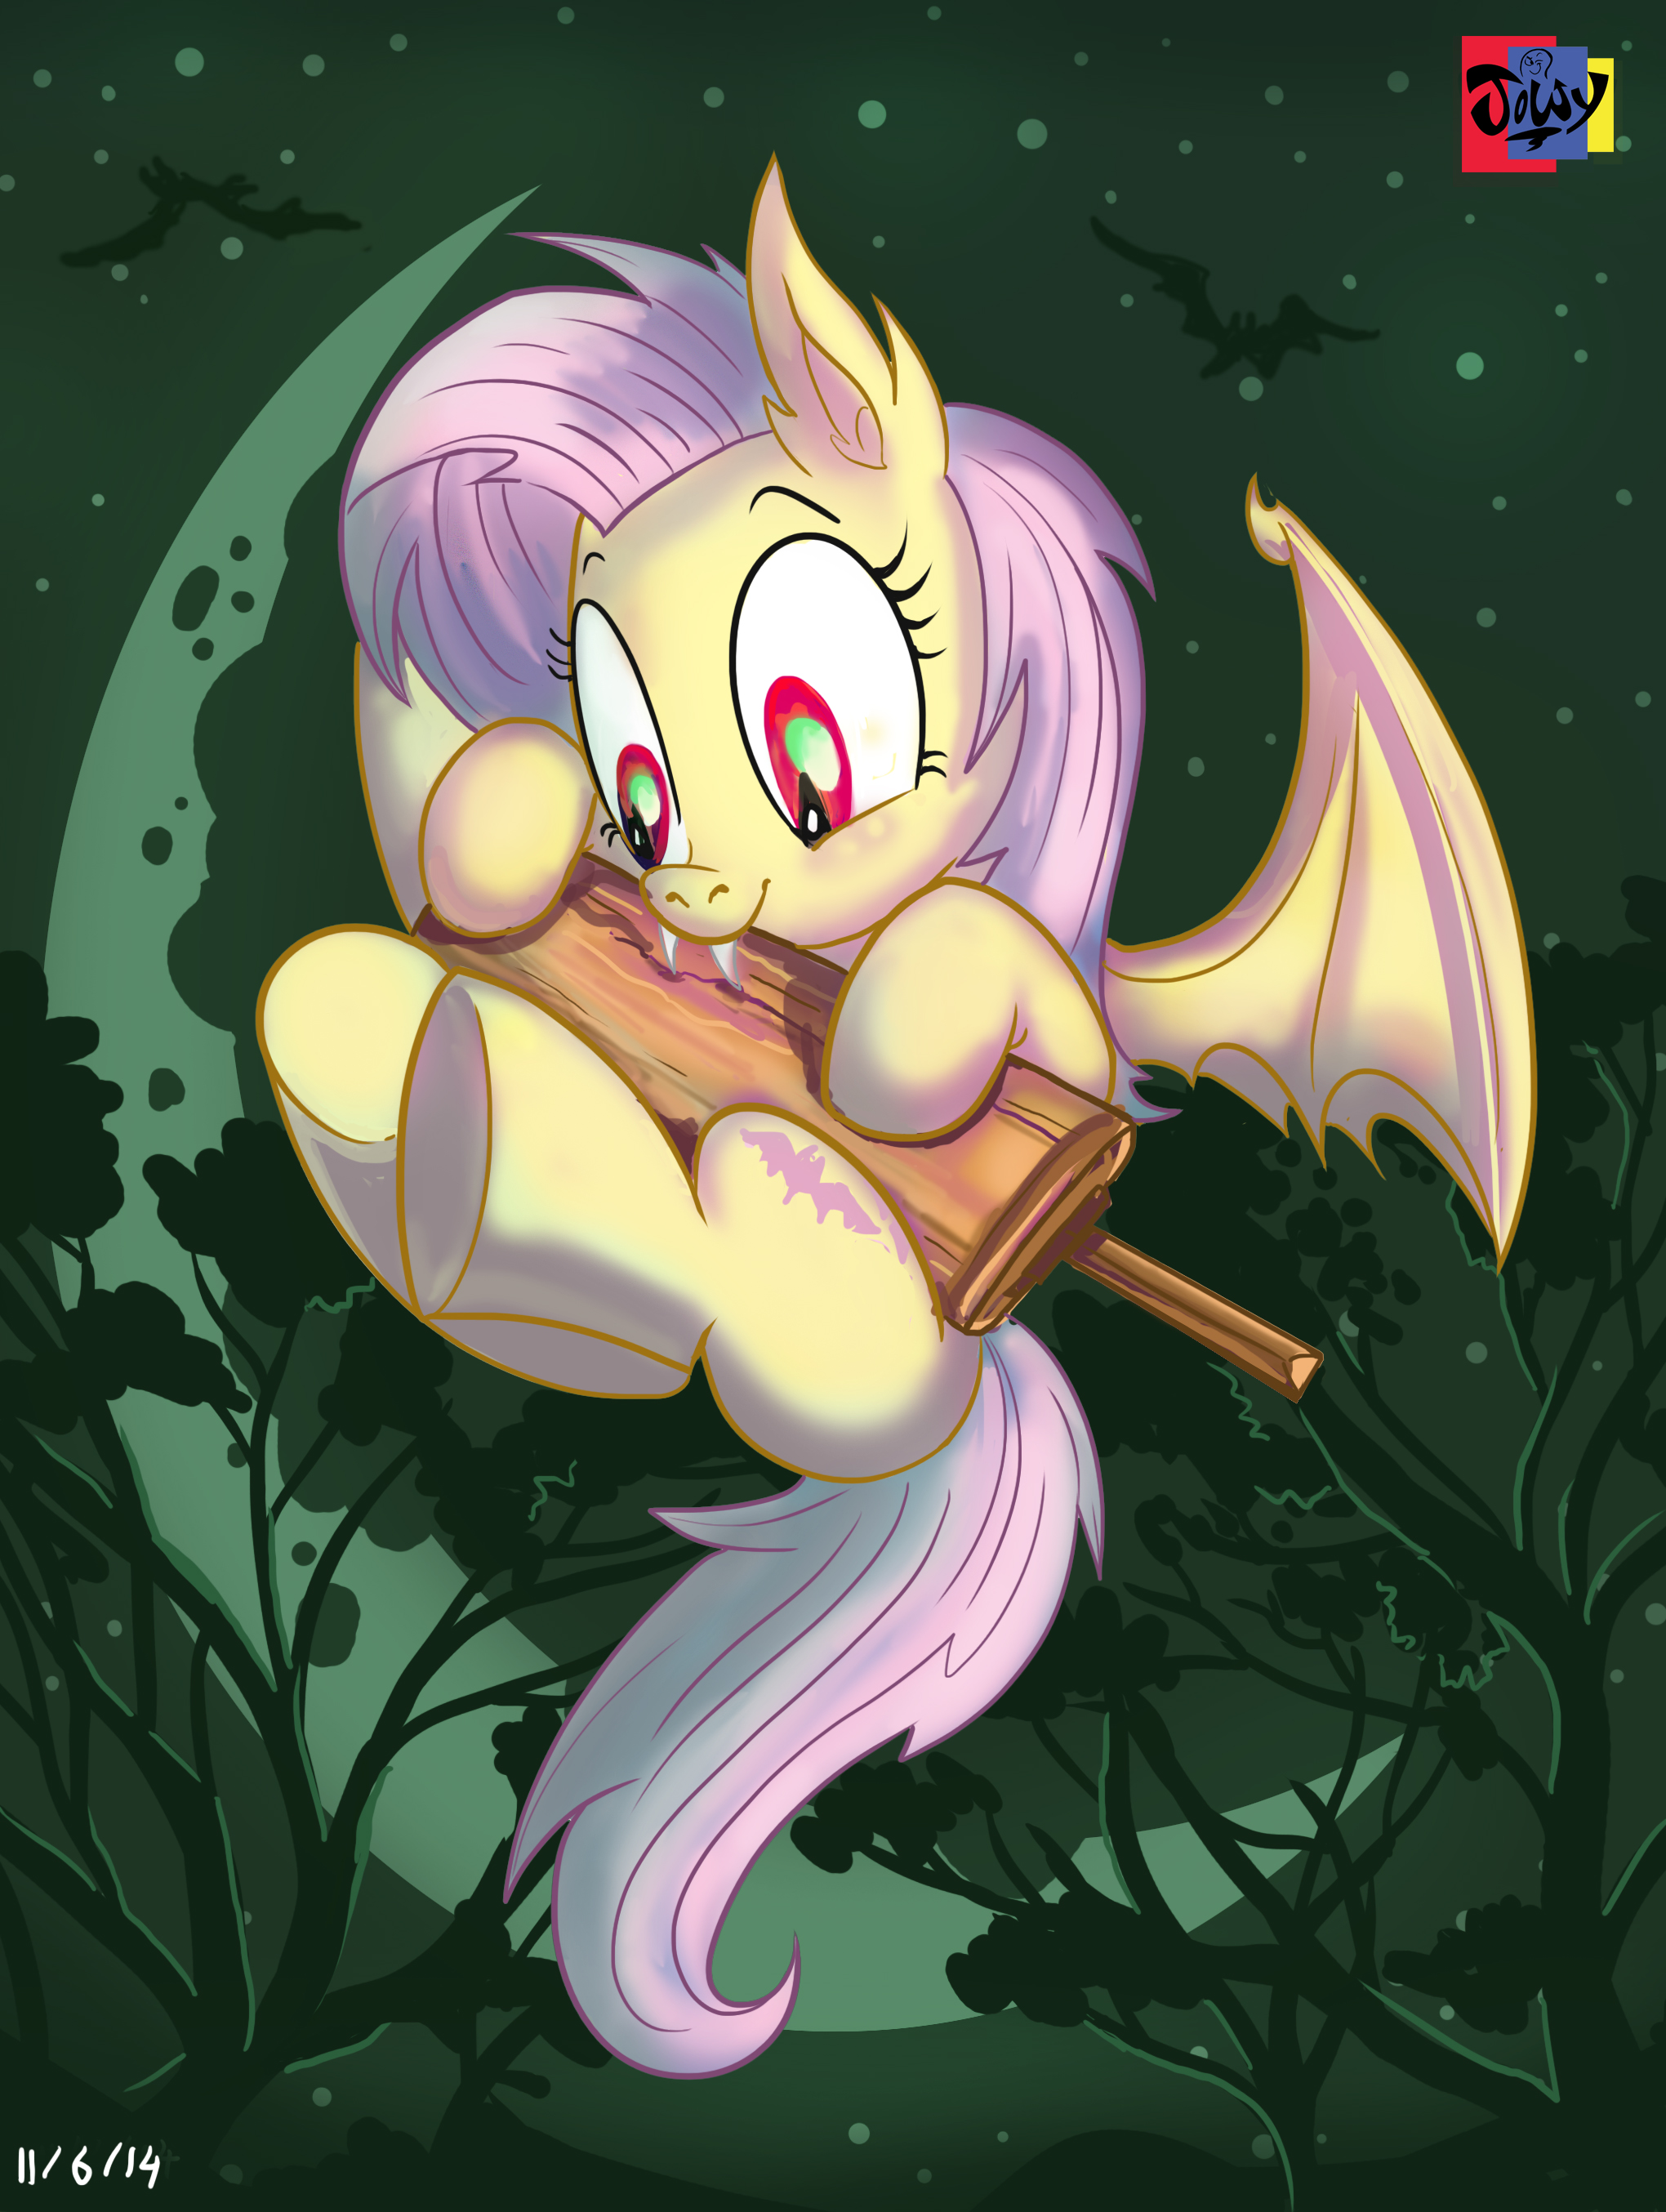 e926 2014 absurd_res bat_pony bat_wings bite cricket_bat cutie_mark equine fangs female feral flutterbat_(mlp) fluttershy_(mlp) flying friendship_is_magic hair hi_res hybrid jowybean mammal membranous_wings moon my_little_pony night outside pink_hair red_eyes small_wings solo tree wings